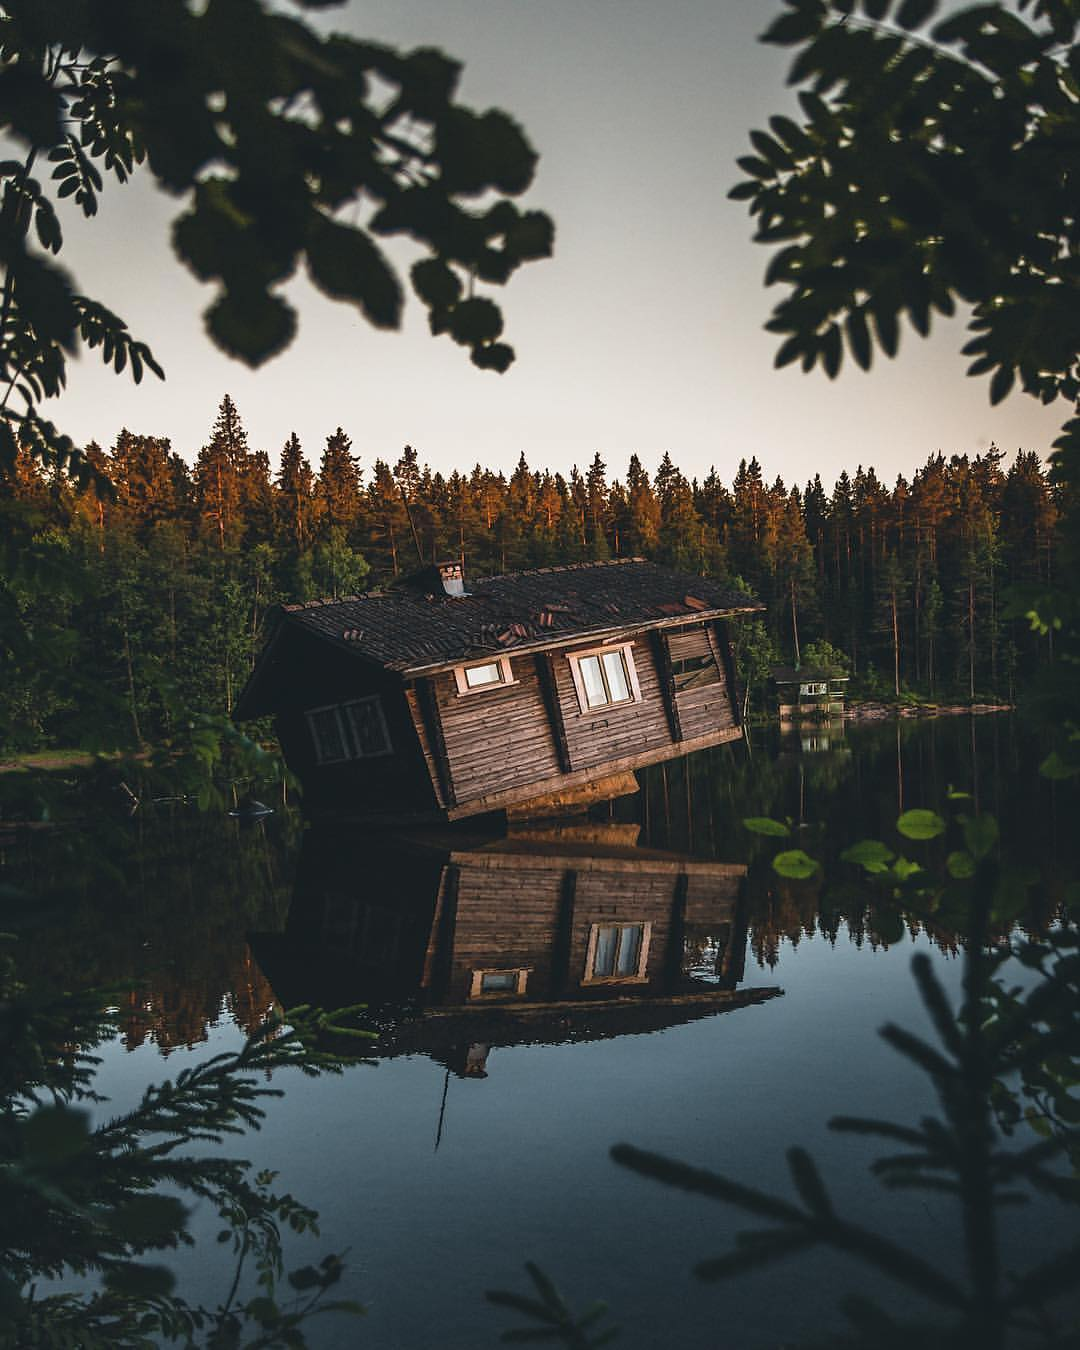 Cabin in the middle of the lake. Seems legit! Only in Finland   #discoverearth…